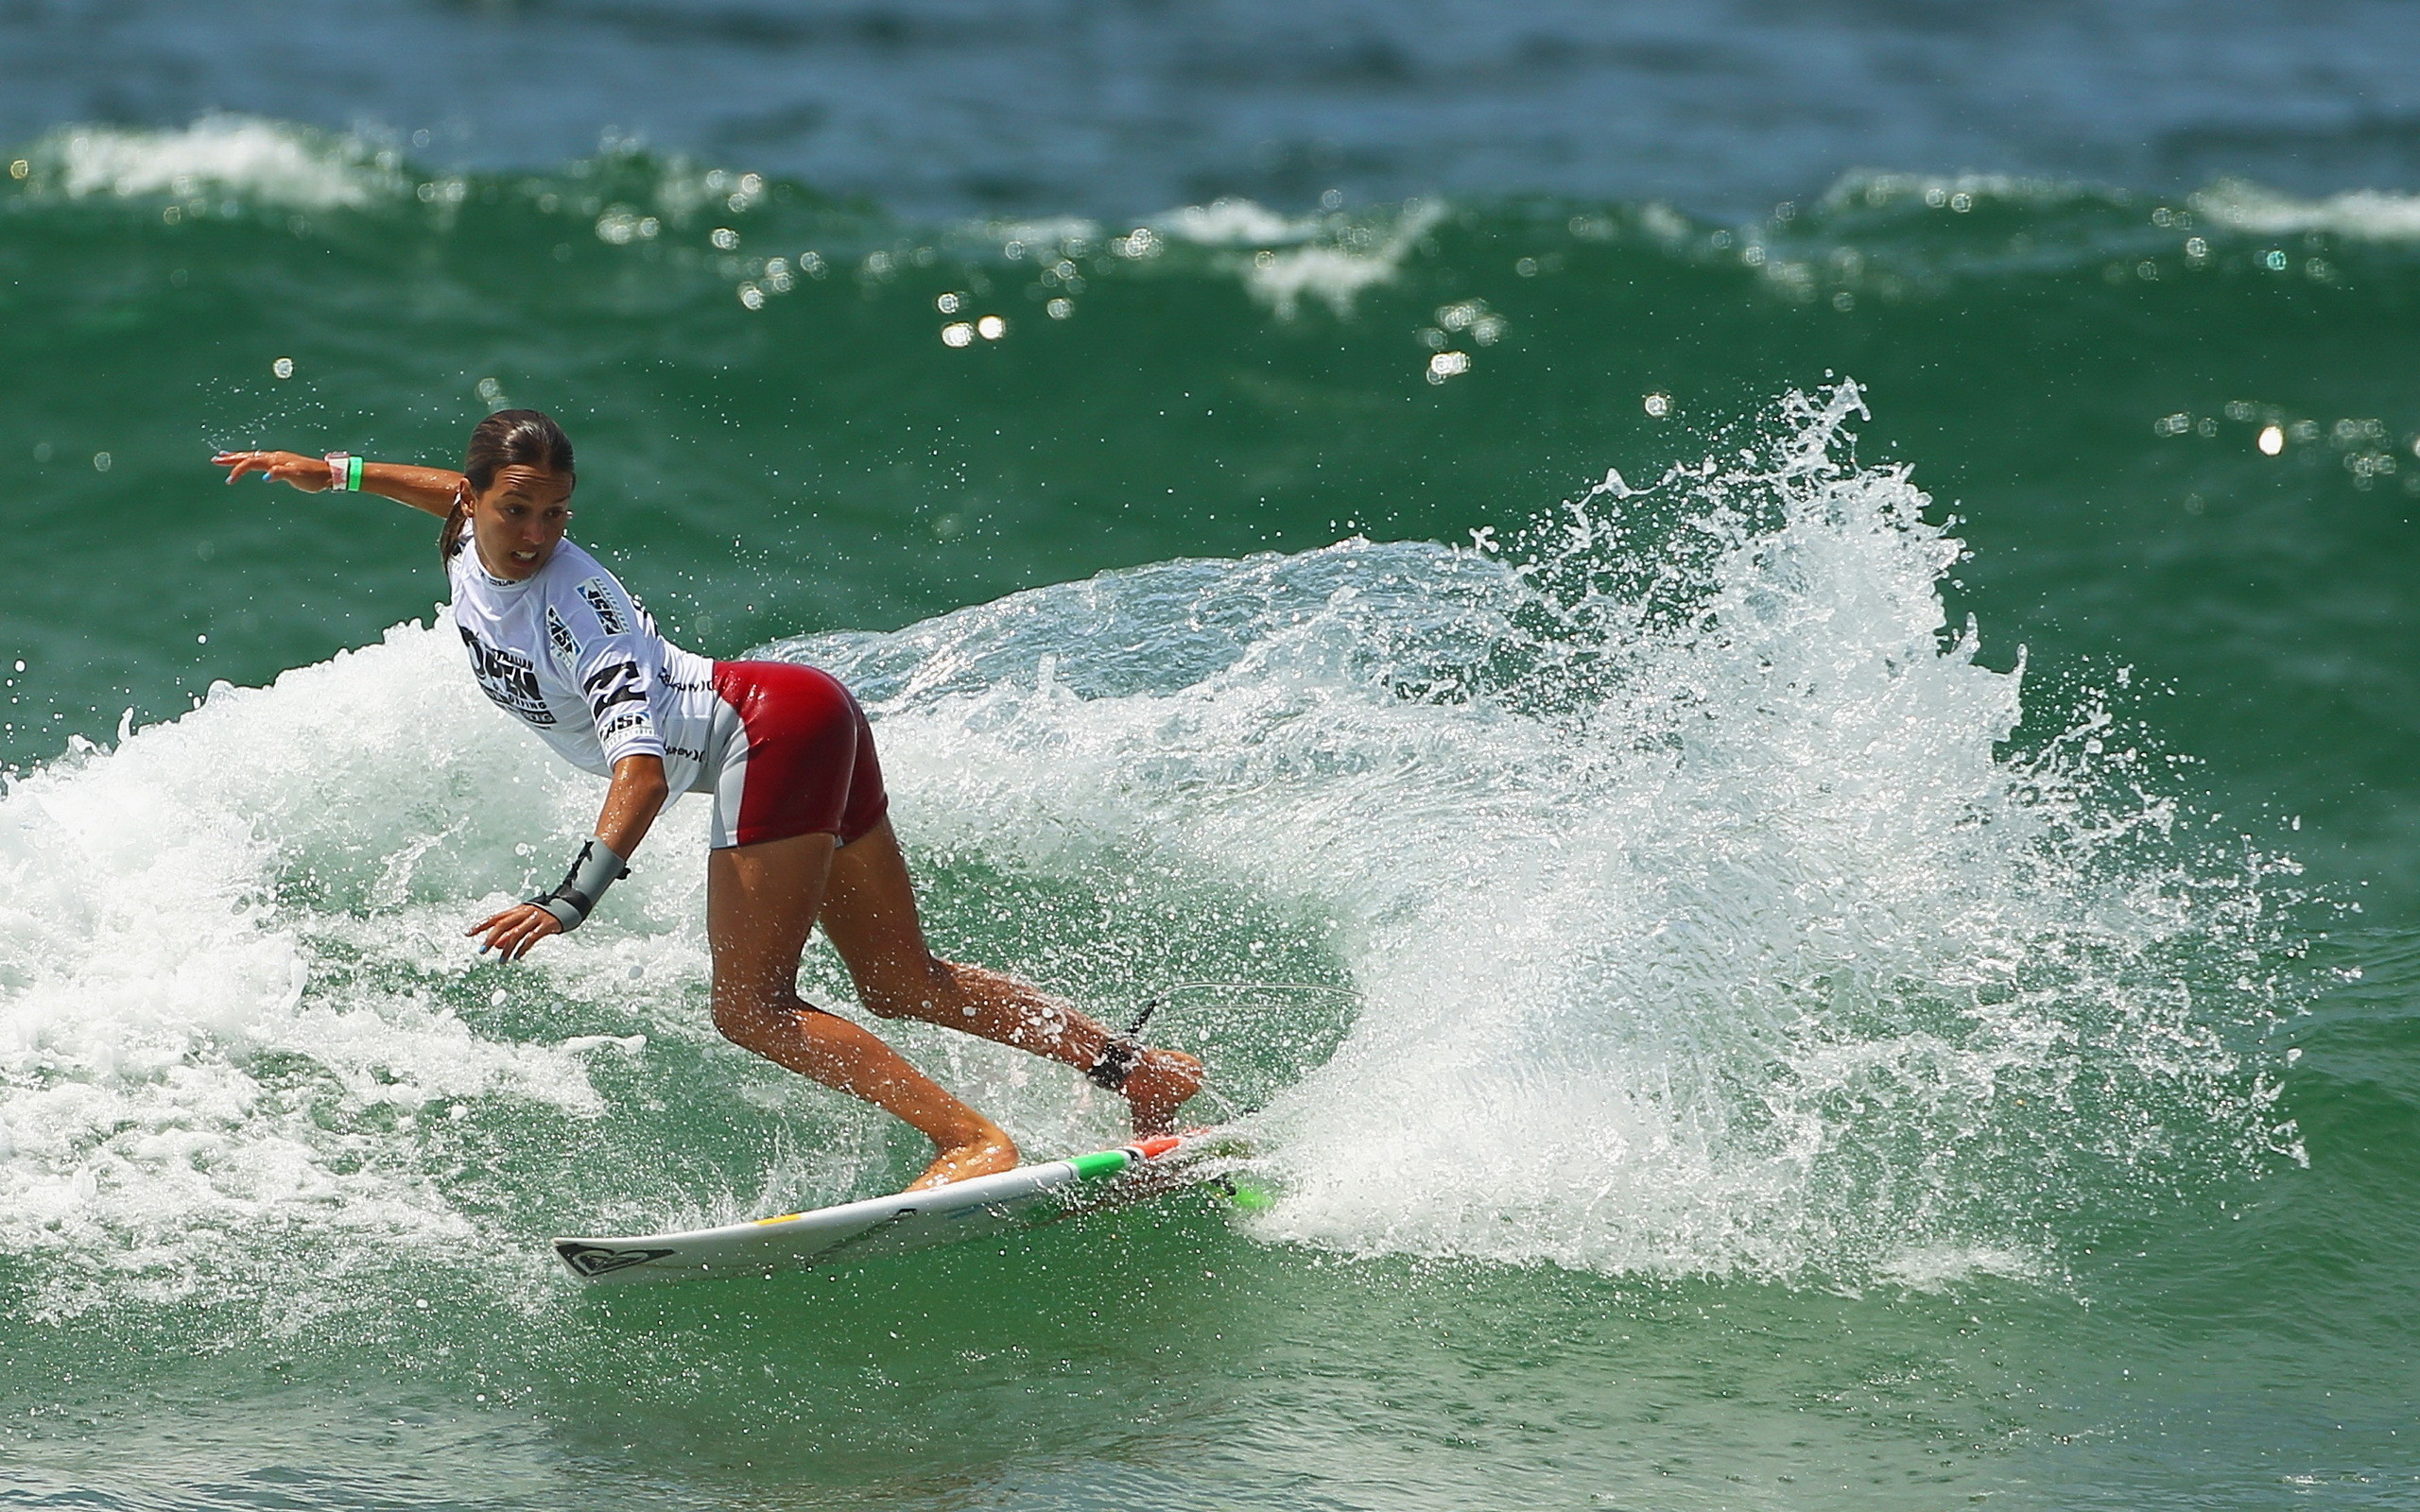 Surfing girls pictures